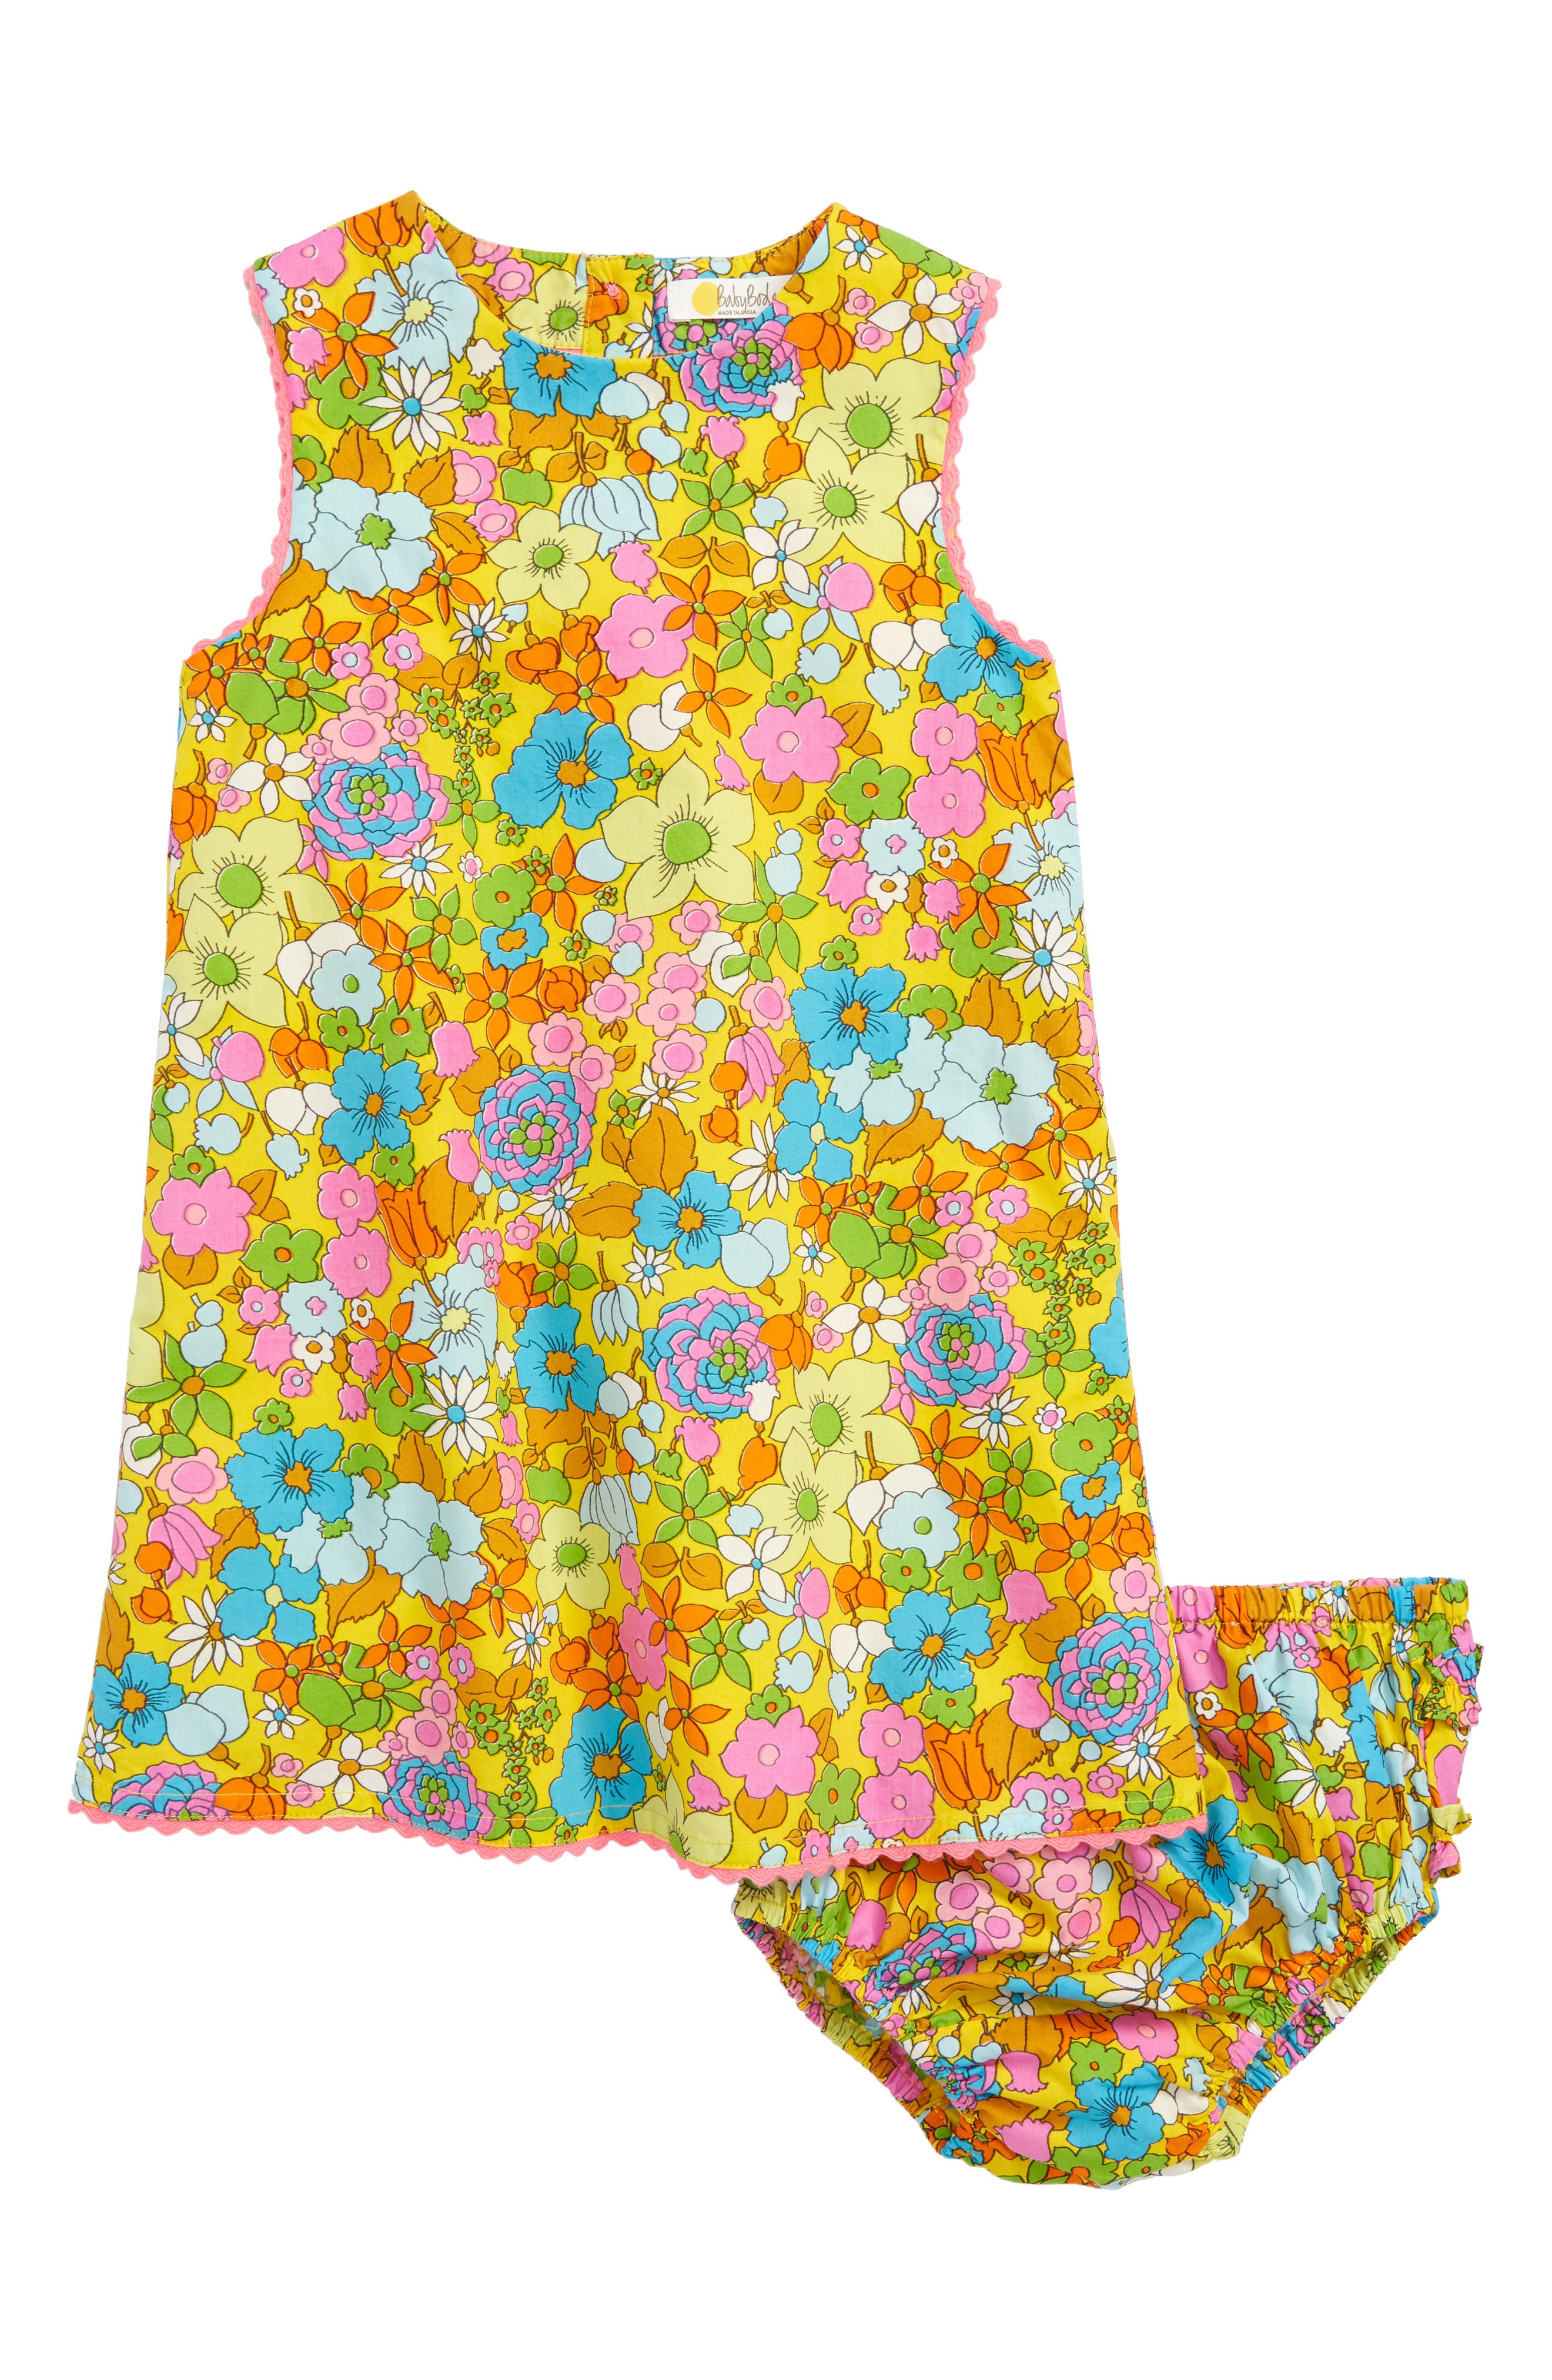 High Summer Woven Lace Dress,                             Main thumbnail 1, color,                             Multi Retro Floral